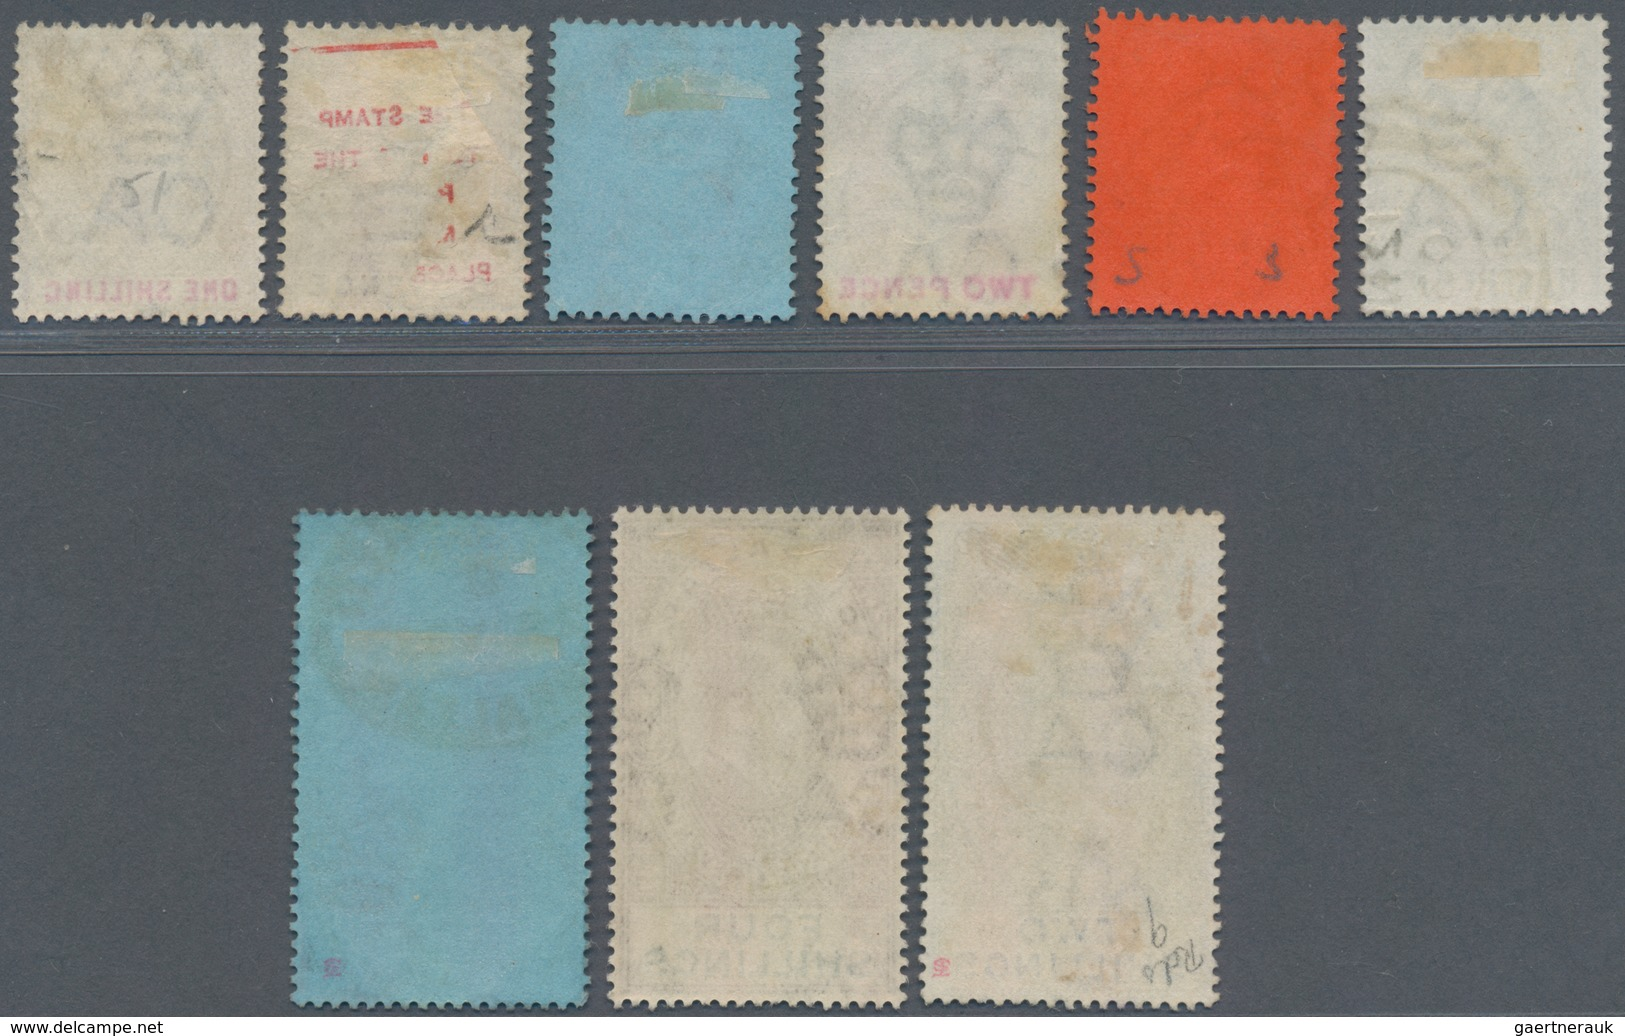 Gibraltar: 1903 KEVII. Short Set Of Nine Up To 8s., All Used, The Top Values Canclled By Gibraltar R - Gibilterra